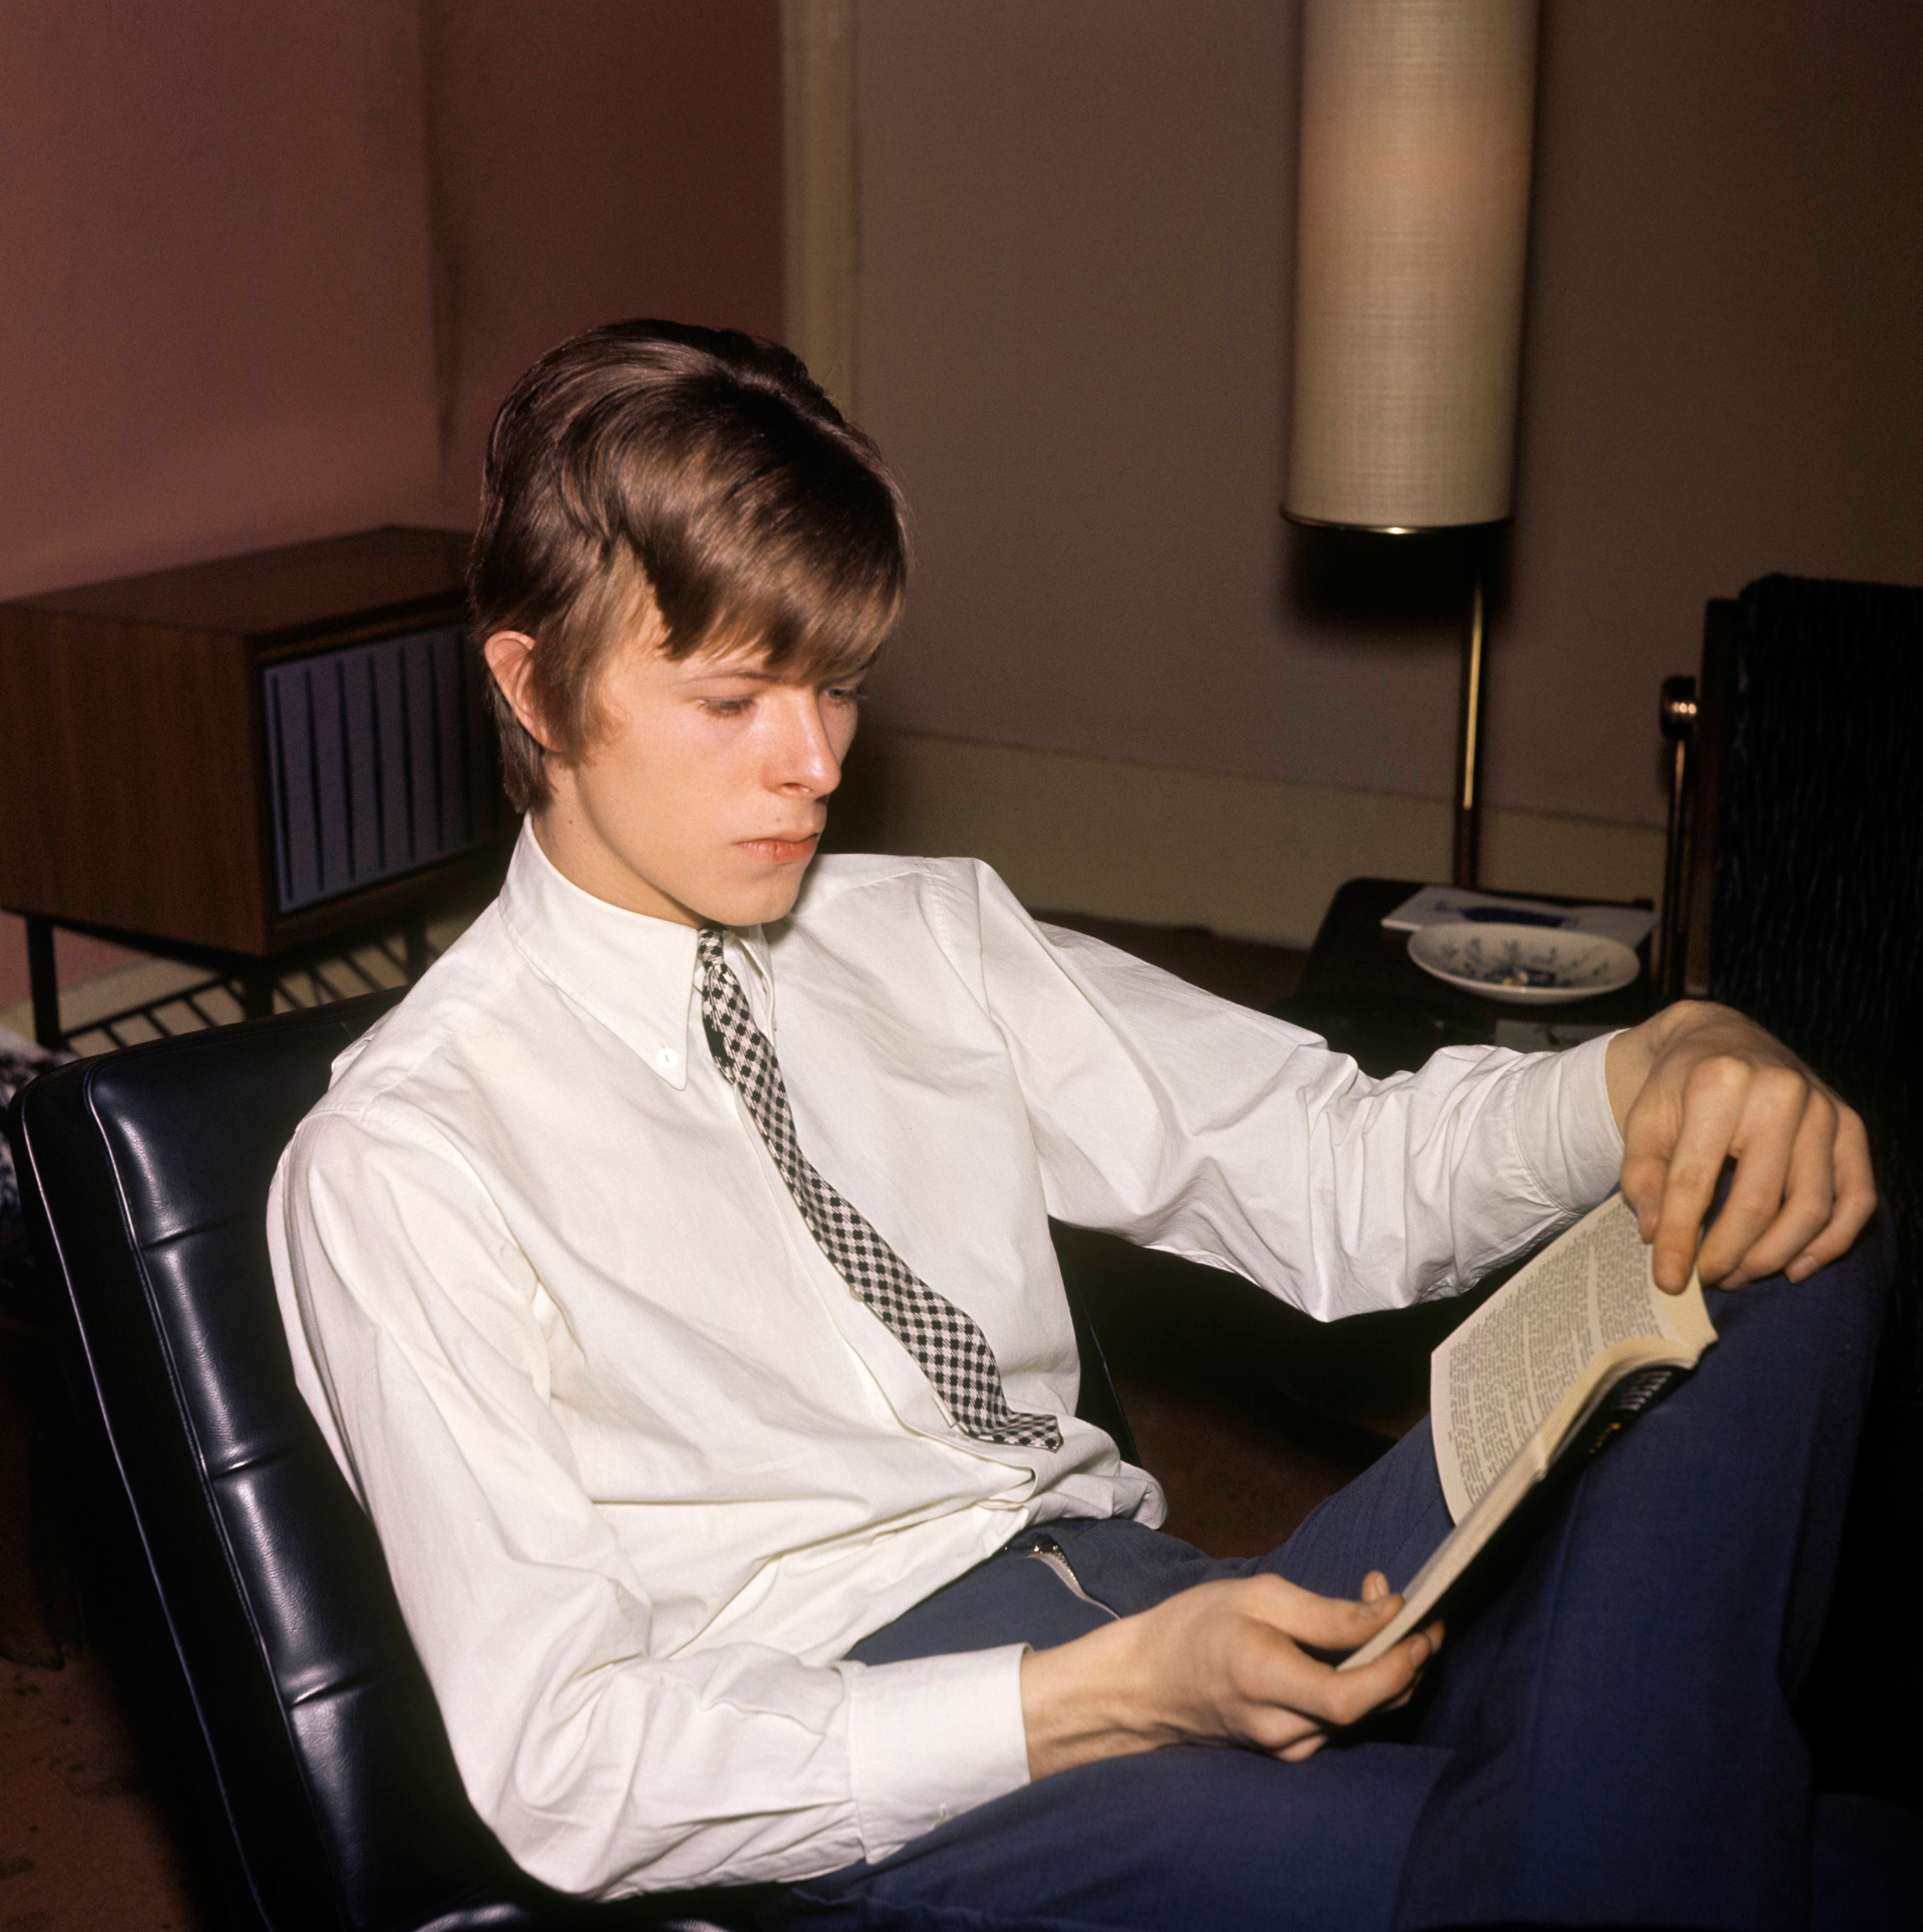 David Bowie photographed reading a book, c. 1965.